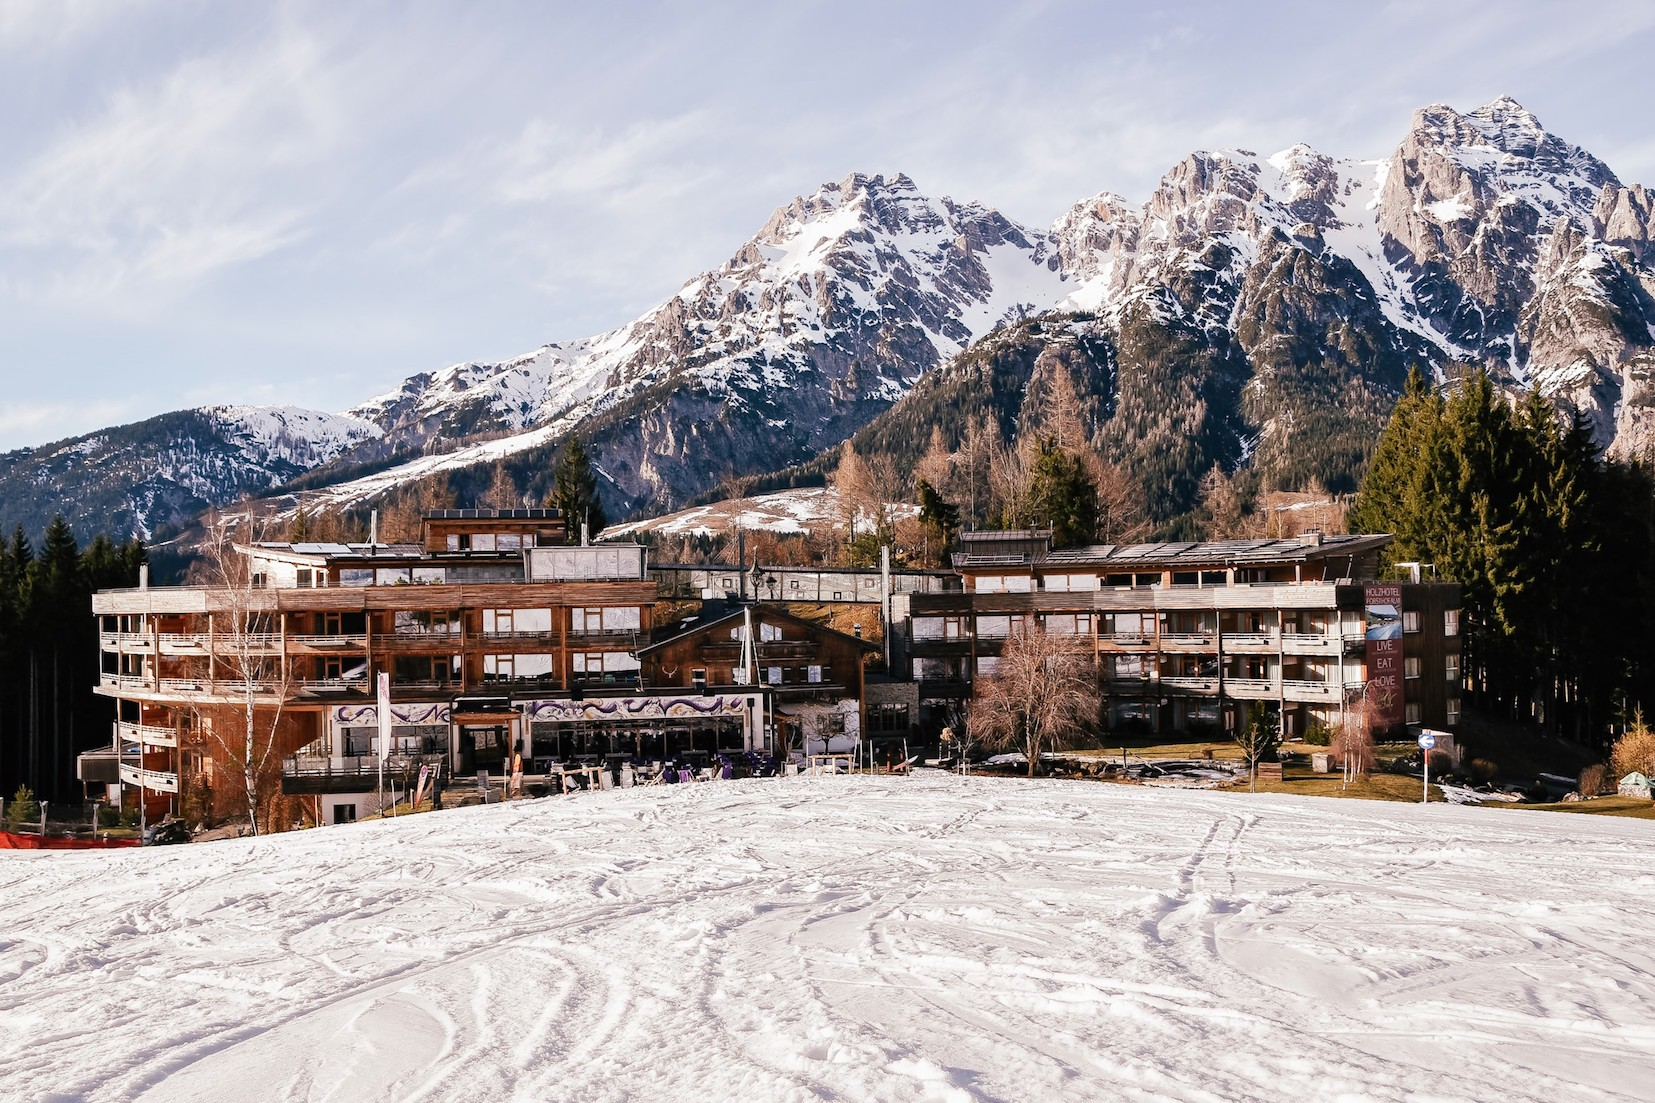 11 REASONS TO BOOK YOUR WINTER GETAWAY IN THE AUSTRIAN ALPS WITH WE ARE TRAVEL GIRLS